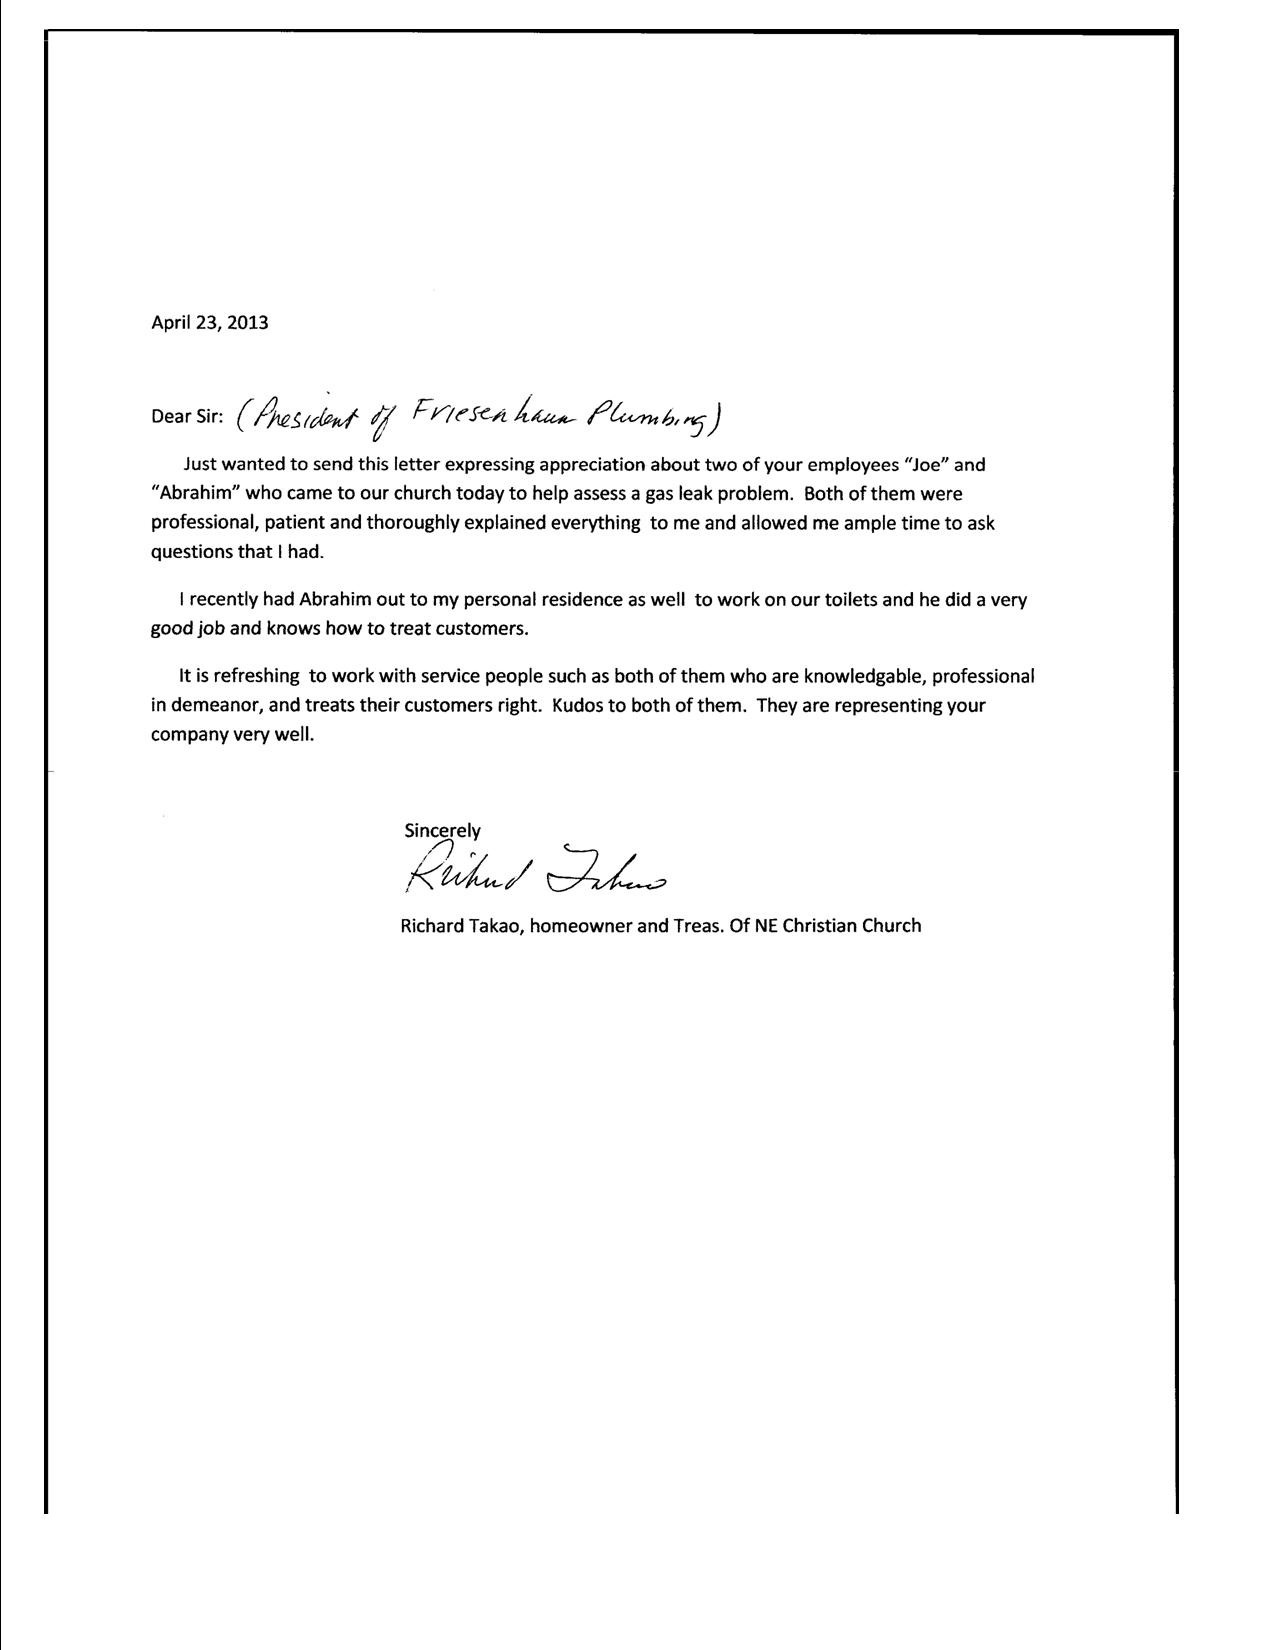 Letter Of Appreciation For Job Well Done from plumbsuper.files.wordpress.com